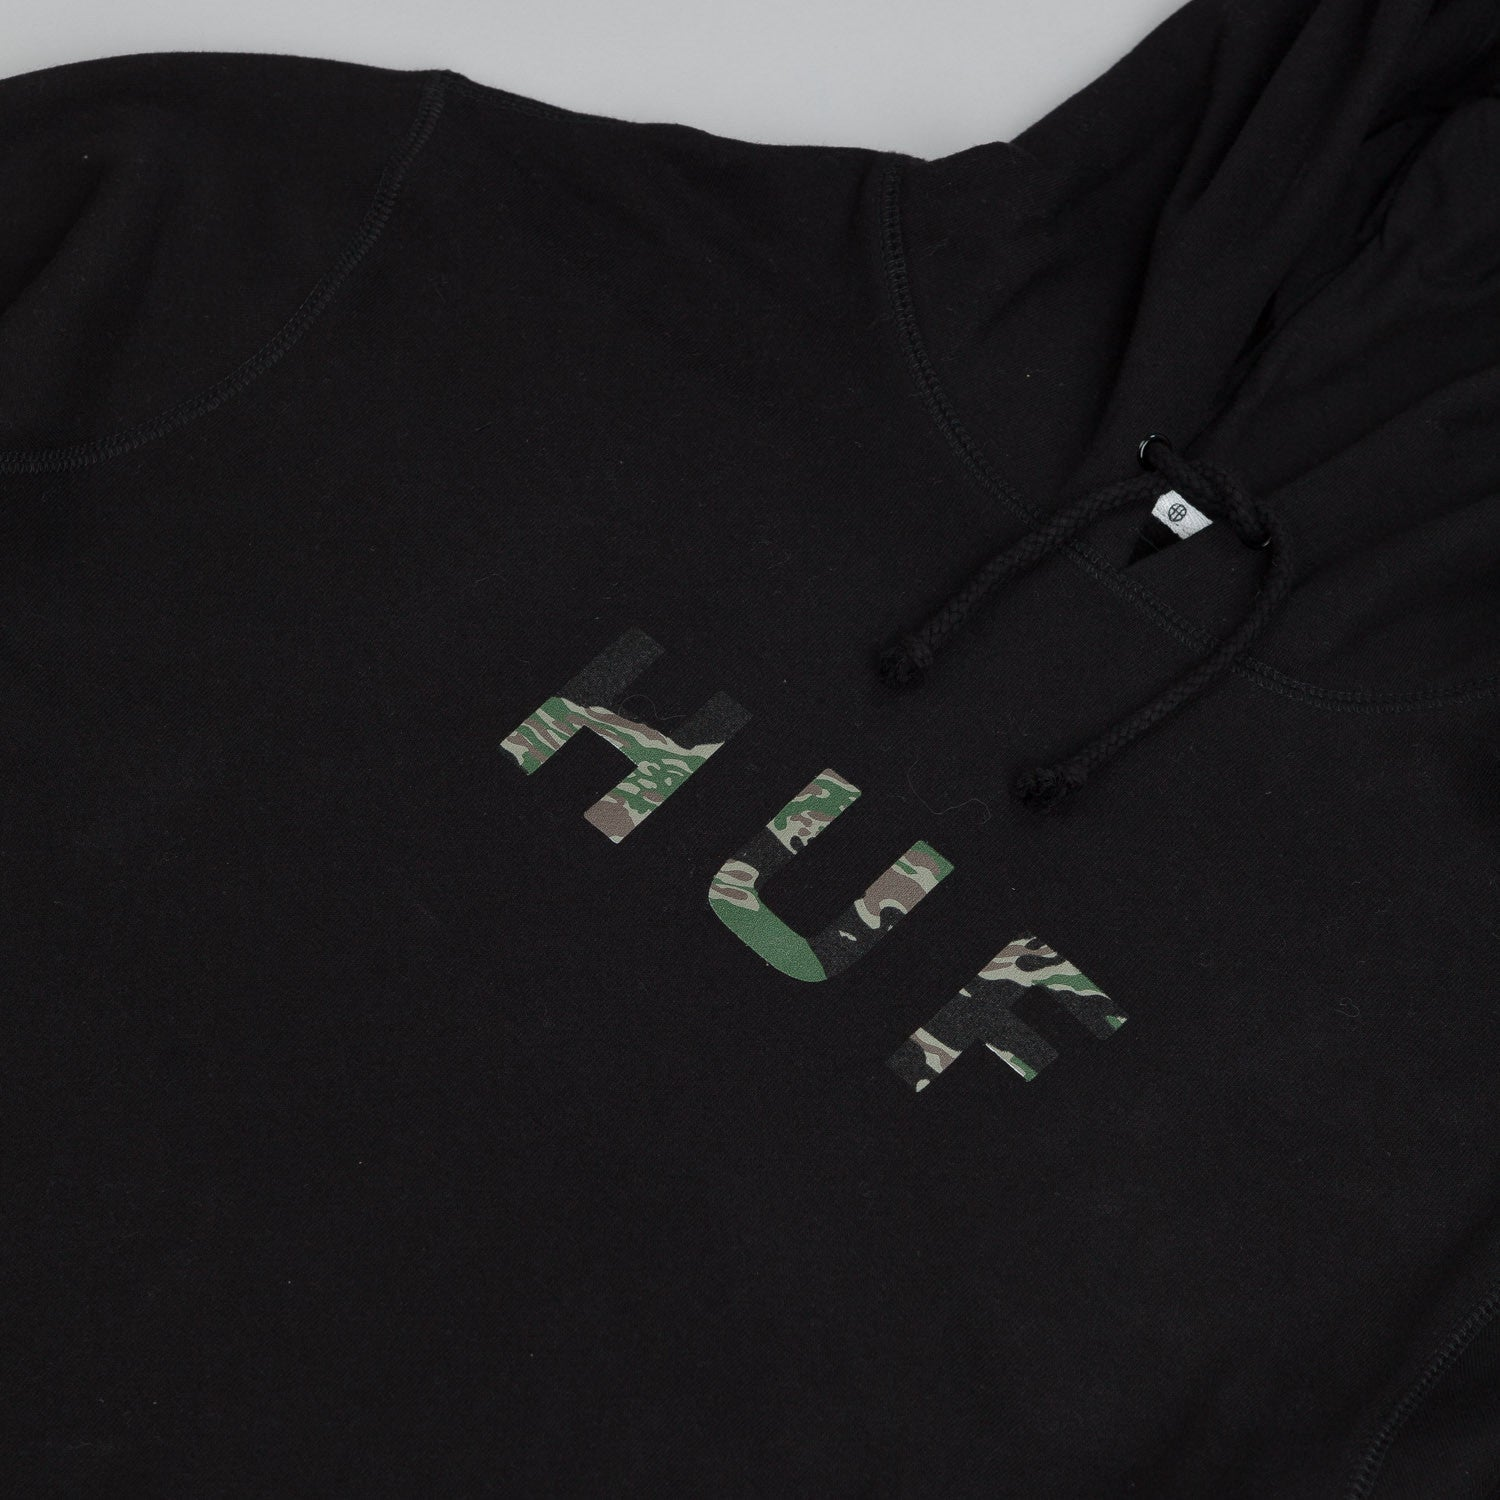 HUF Original Logo Tiger Camo Hooded Sweatshirt Black